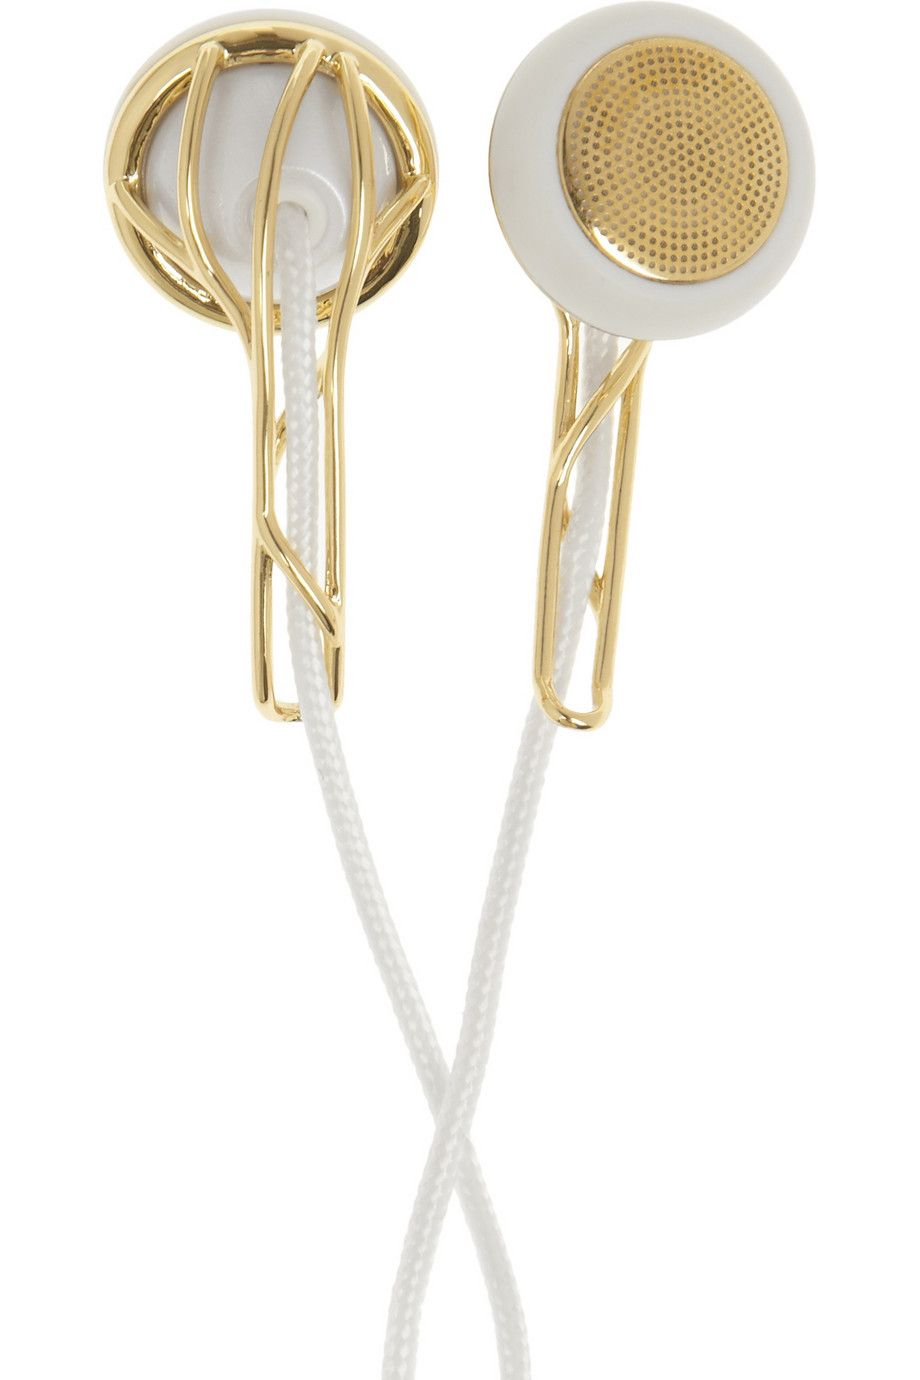 Frends' high-performance 'Ella' earphones deliver authentic, natural sound thanks to a 13mm driver. Handmade with gold-tone metal details, this jewelry-inspired pair is both stylish and functional. We love the fabric-covered cords and handy travel pouch.